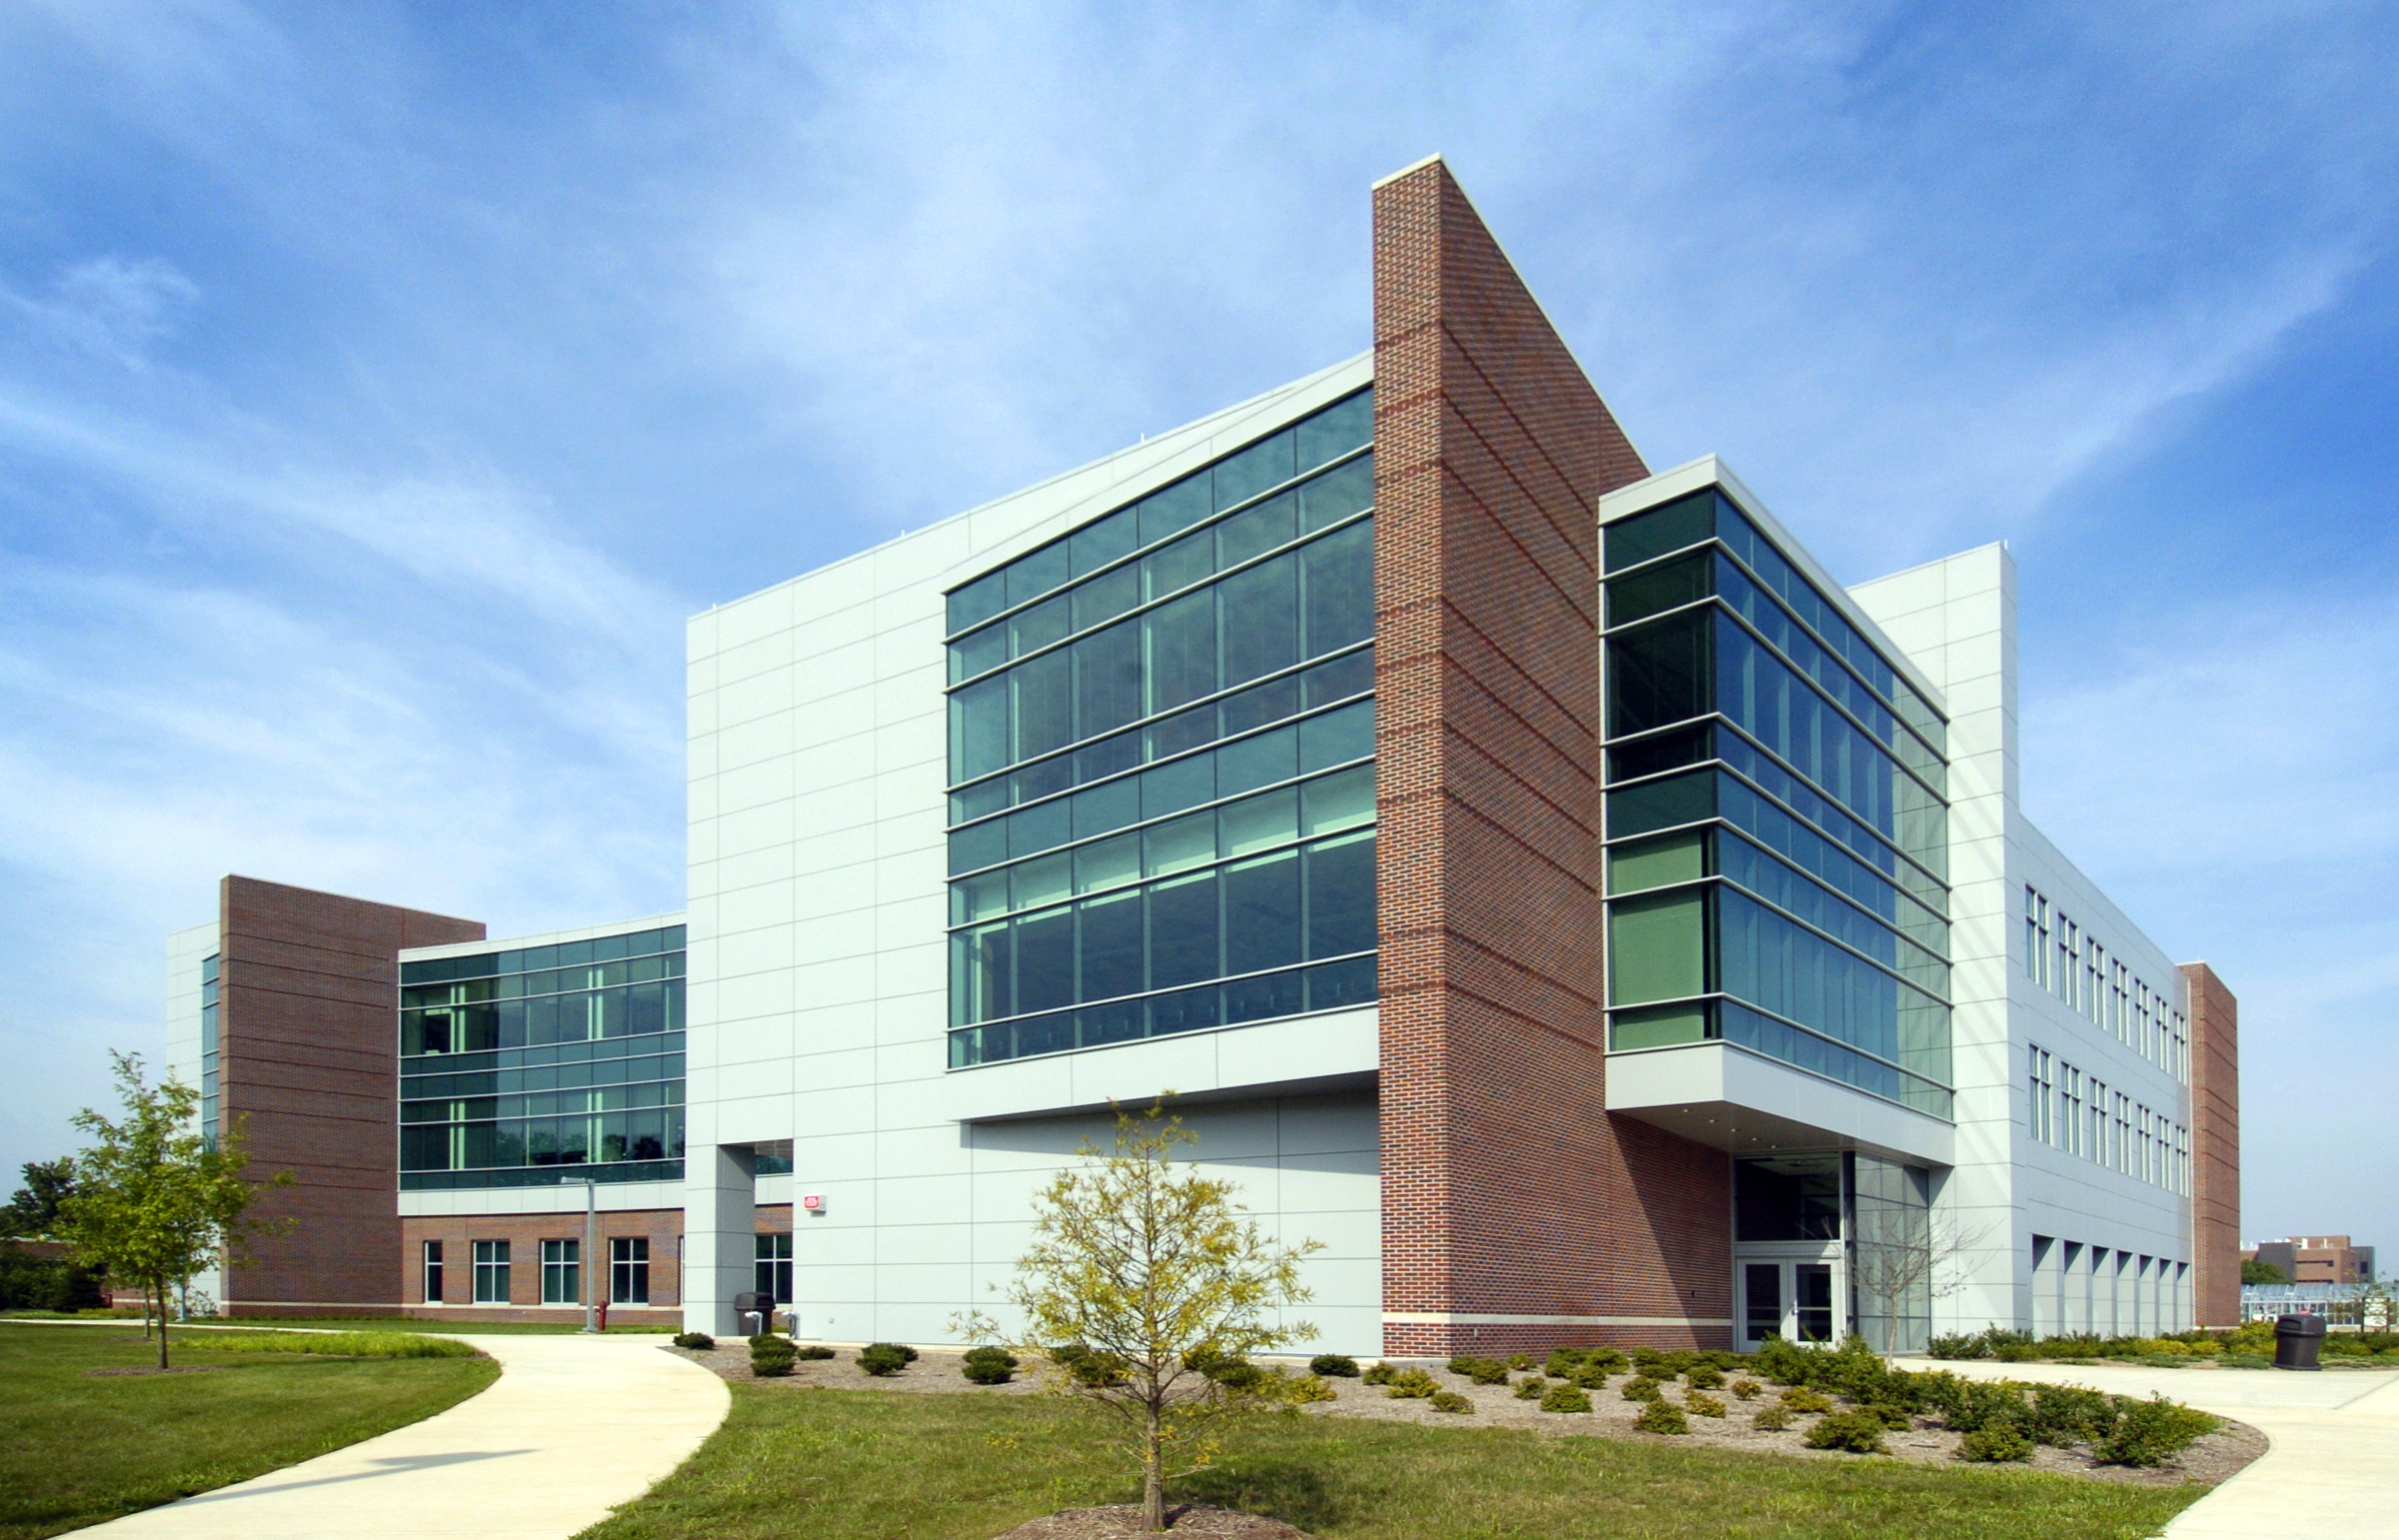 Purdue Biomedical Engineering Building